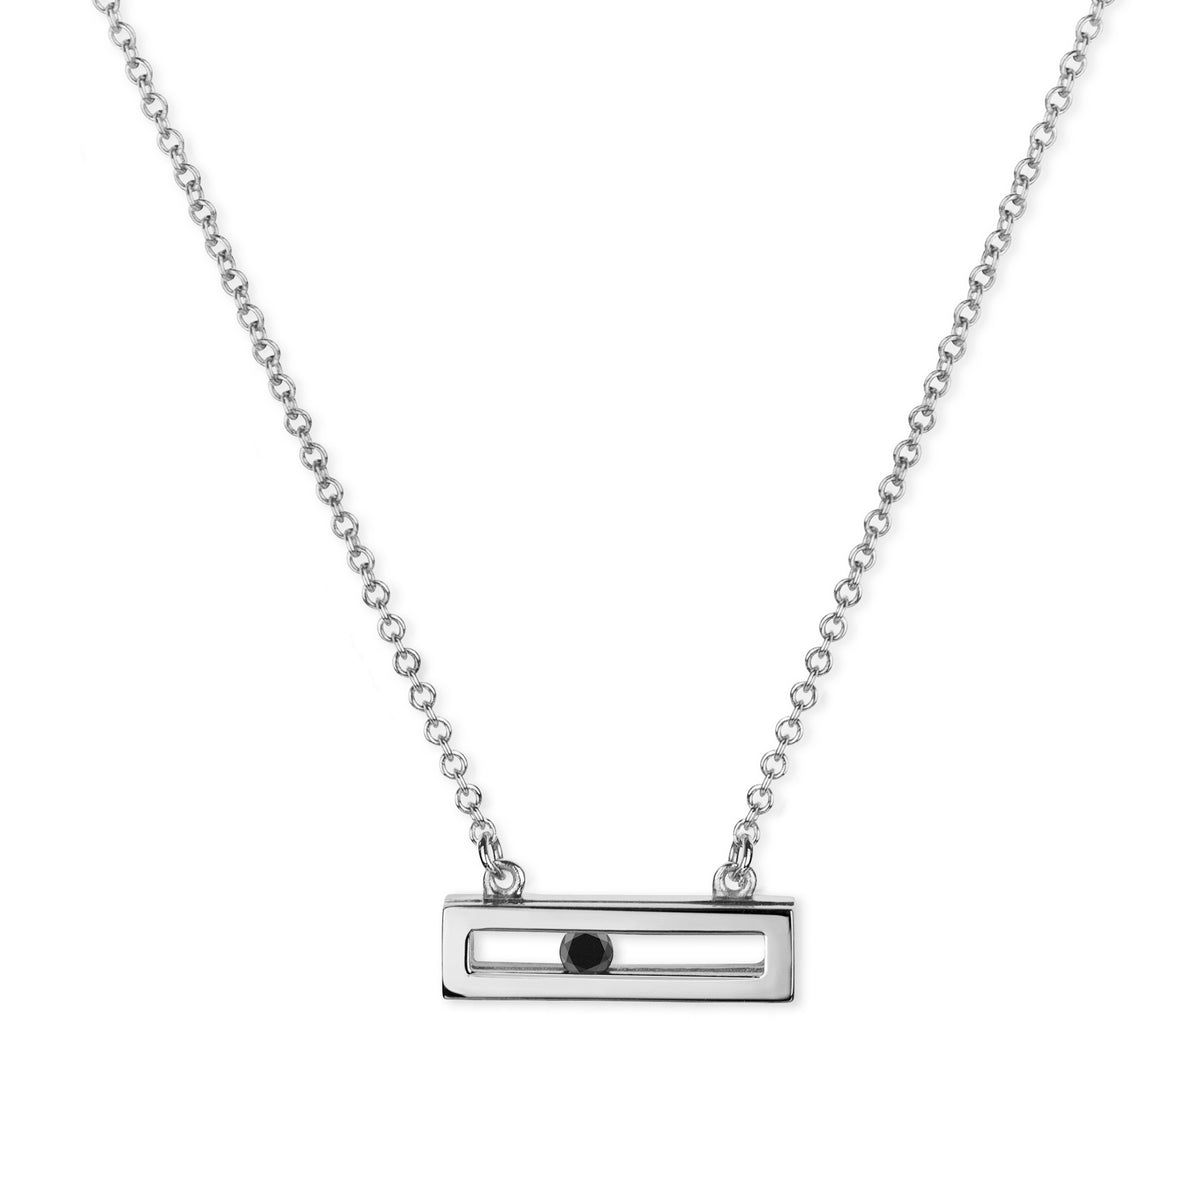 Luke Rose Jewellery white gold black diamond necklace